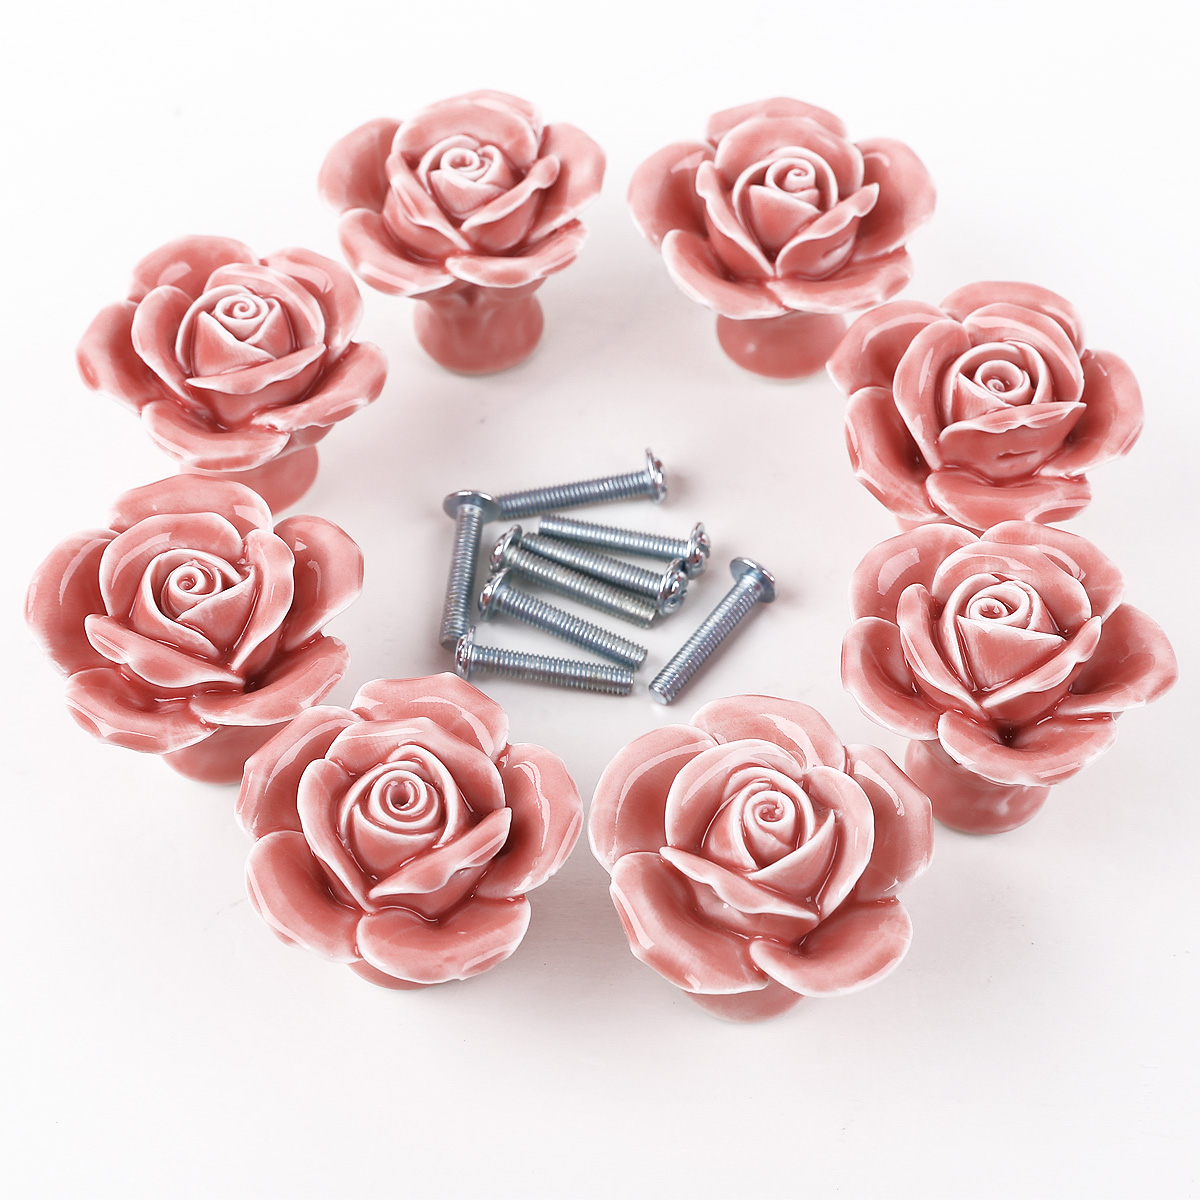 rose door knobs photo - 19